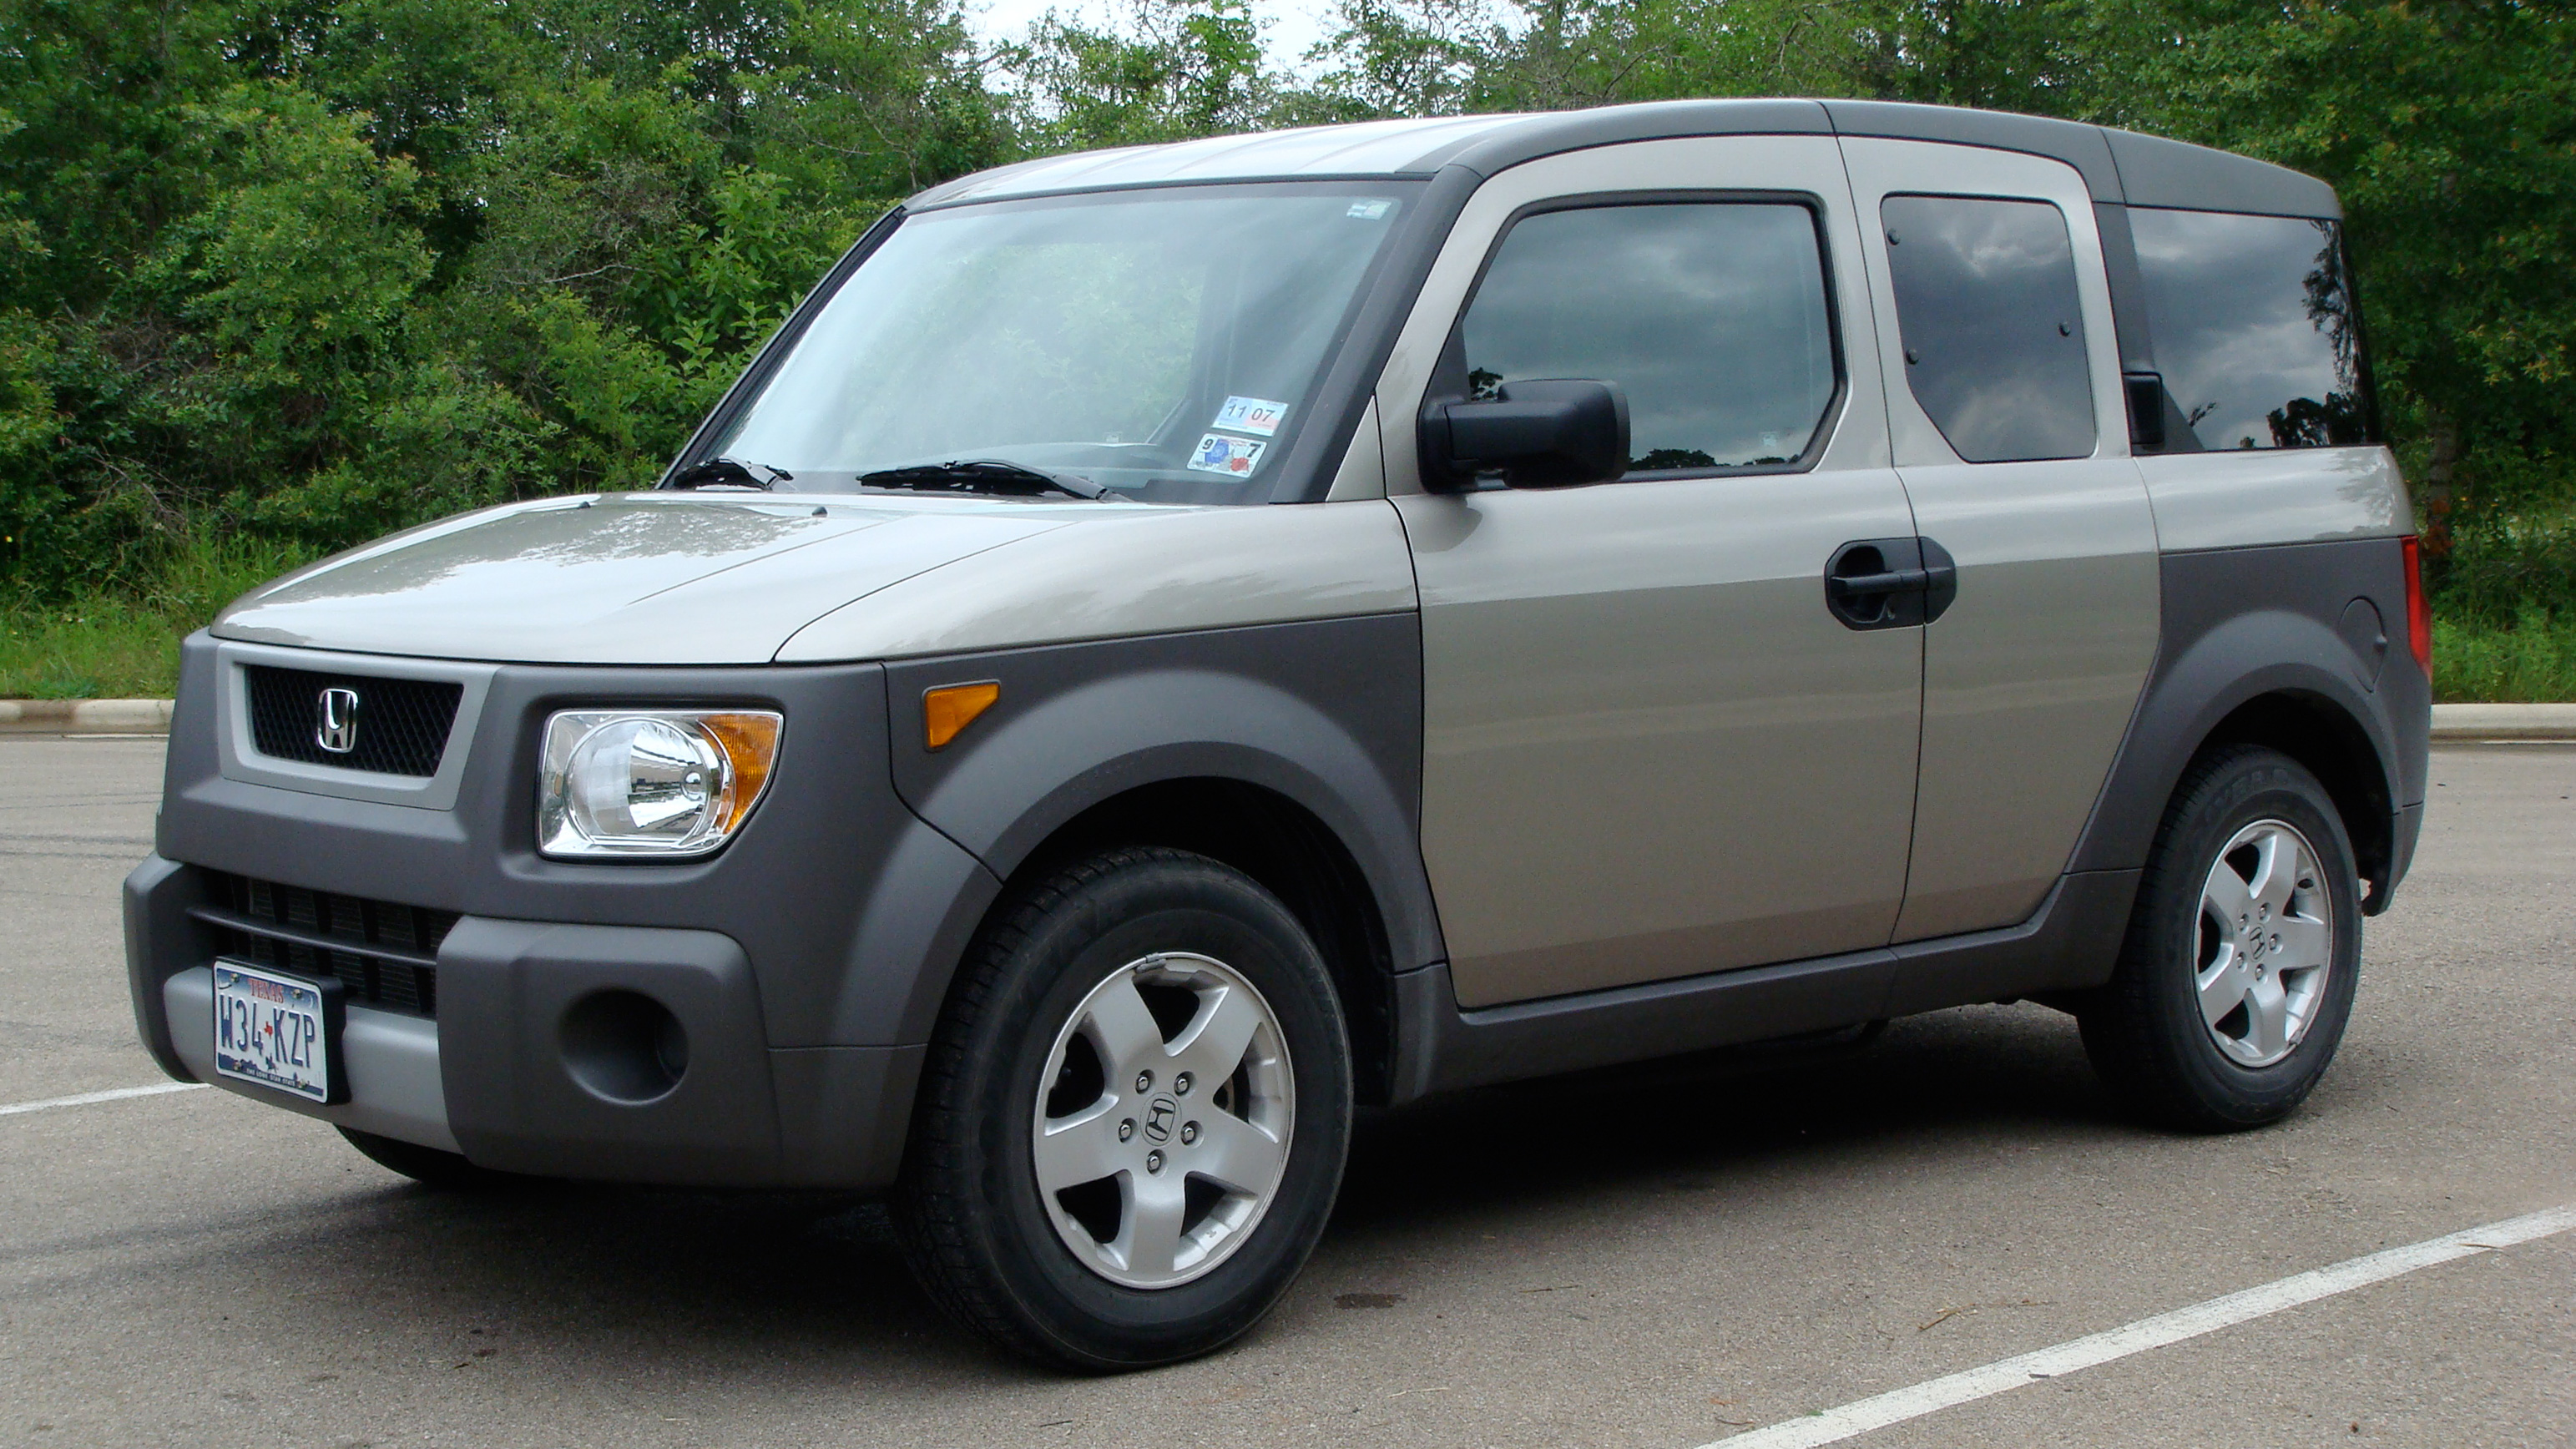 2006 Honda Element Image 14